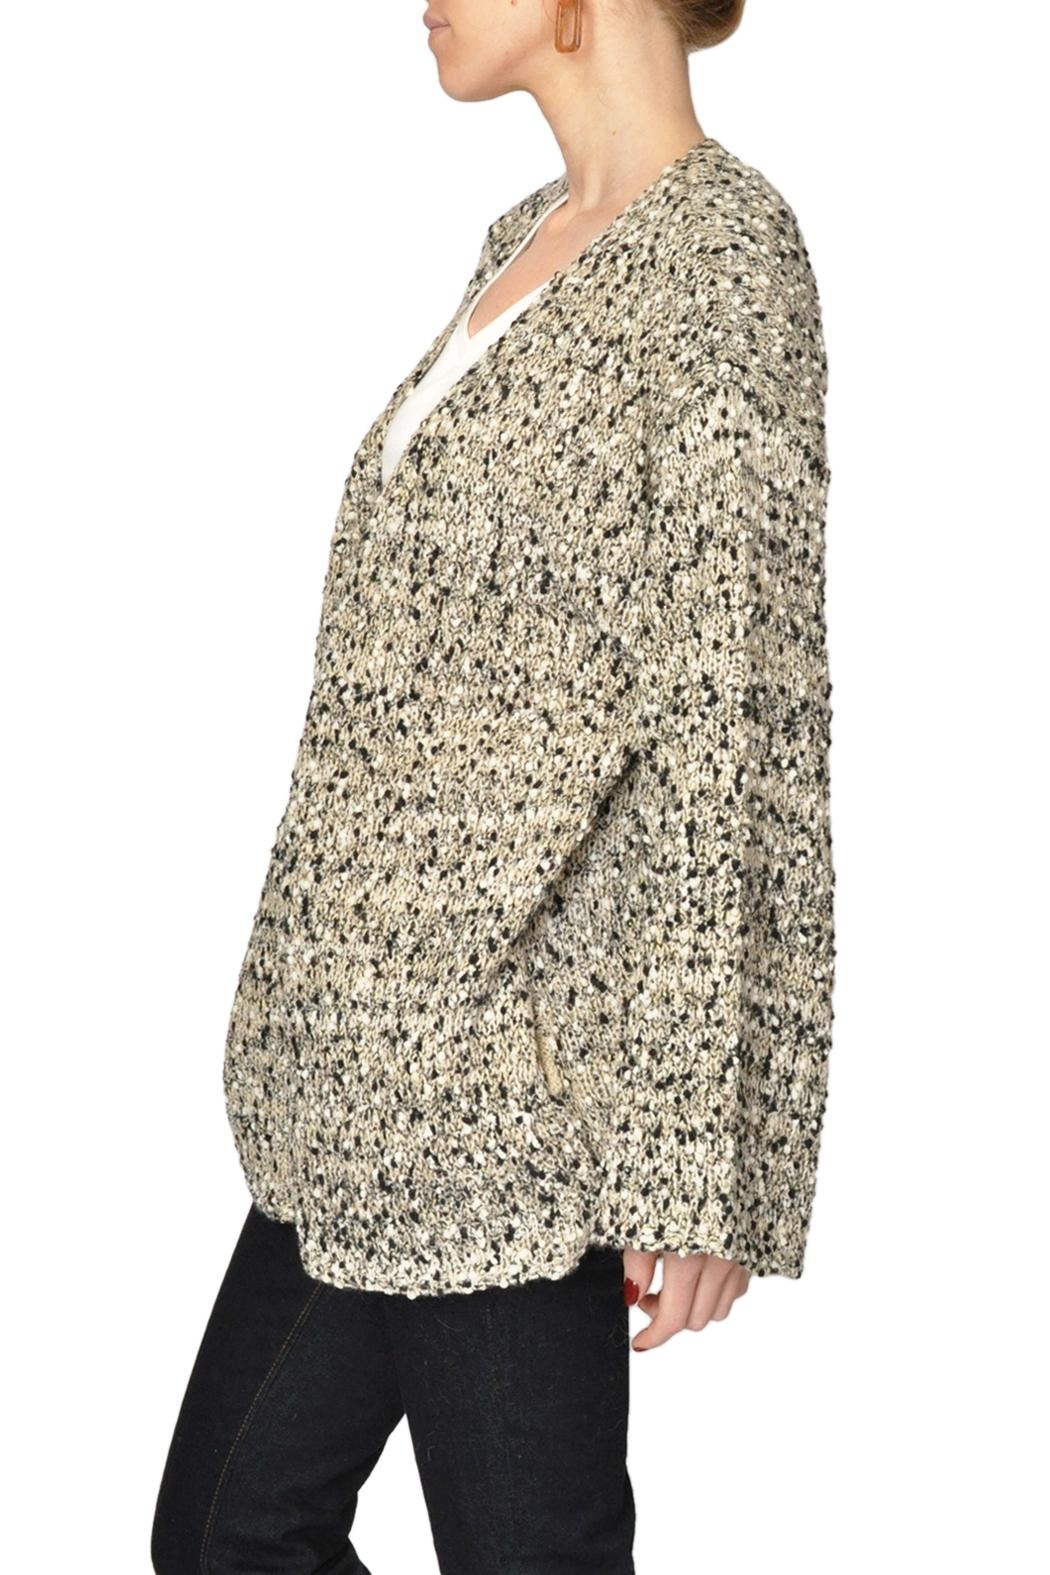 See U Soon Speckled Cardigan Sweater - Front Full Image